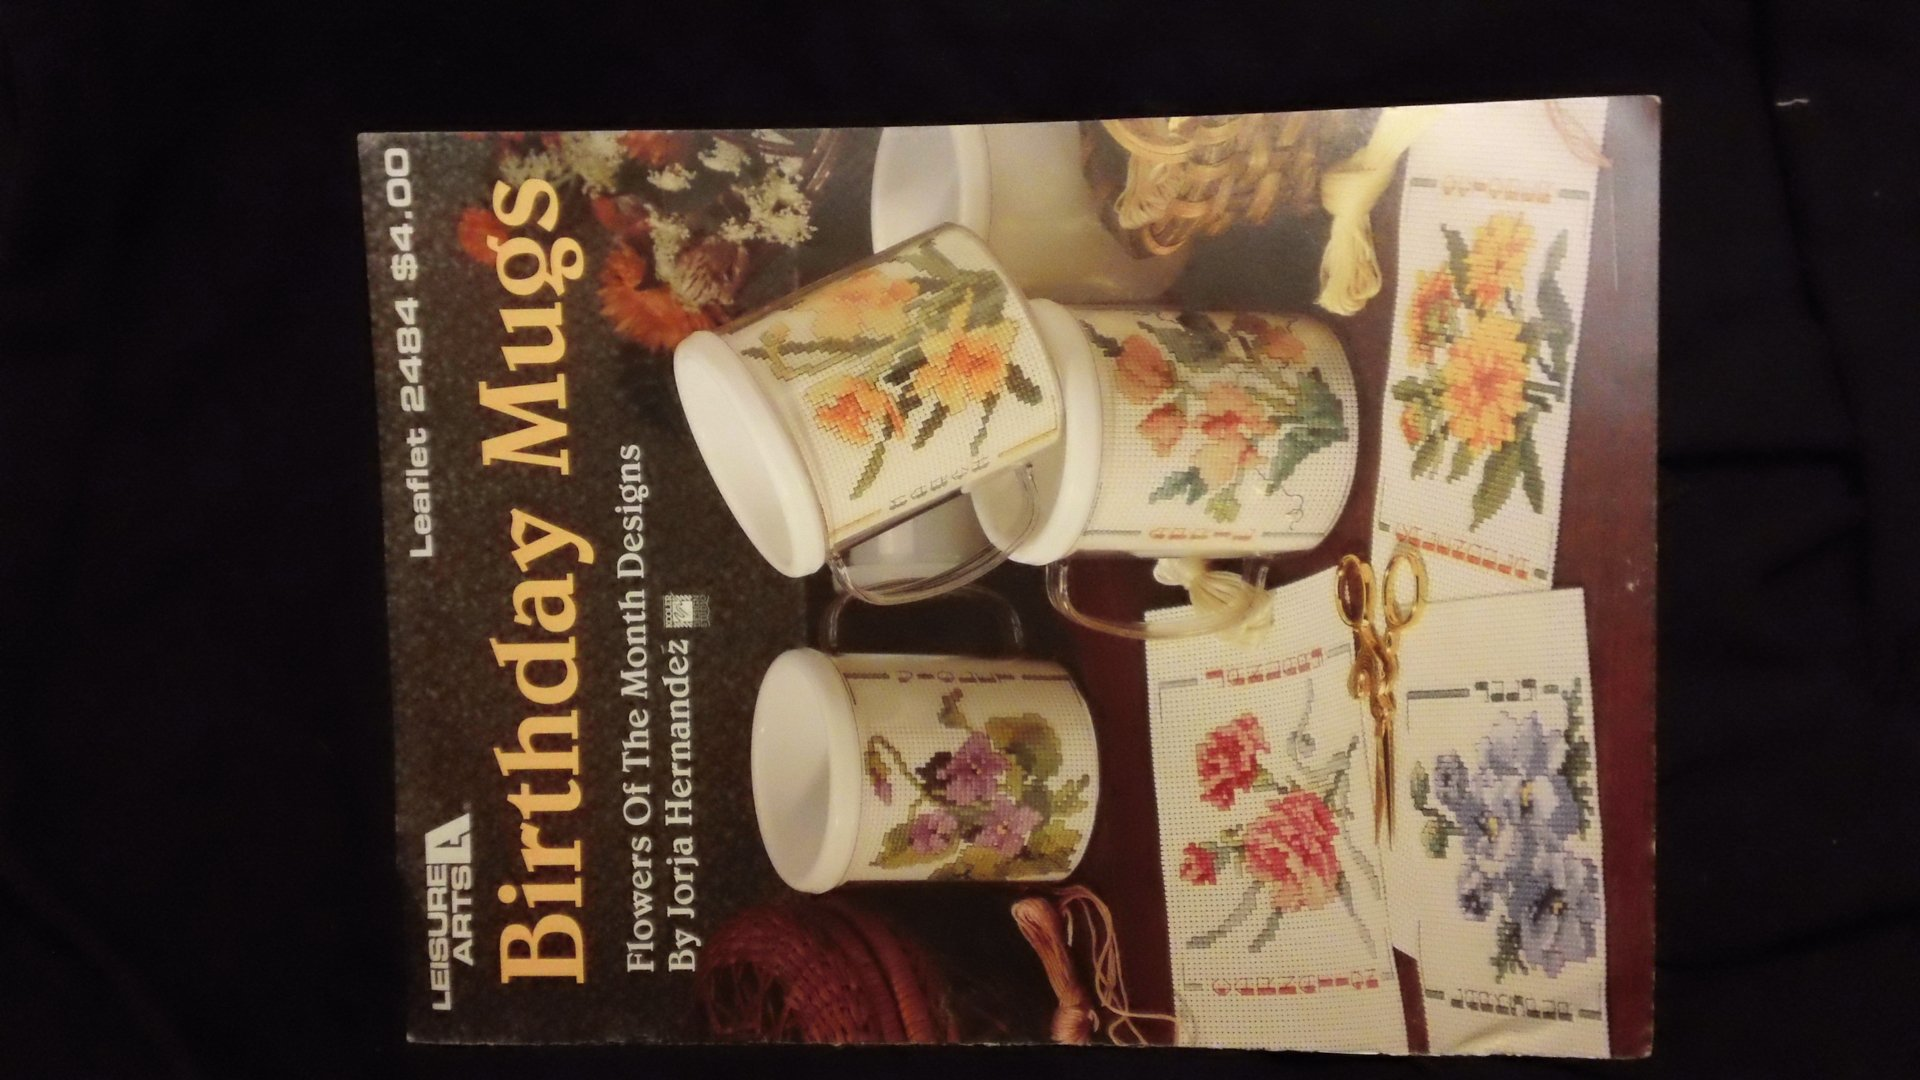 Birthday mugs flowers of the month designs for cross stitch jorja birthday mugs flowers of the month designs for cross stitch jorja hernandez 0028906024845 amazon books izmirmasajfo